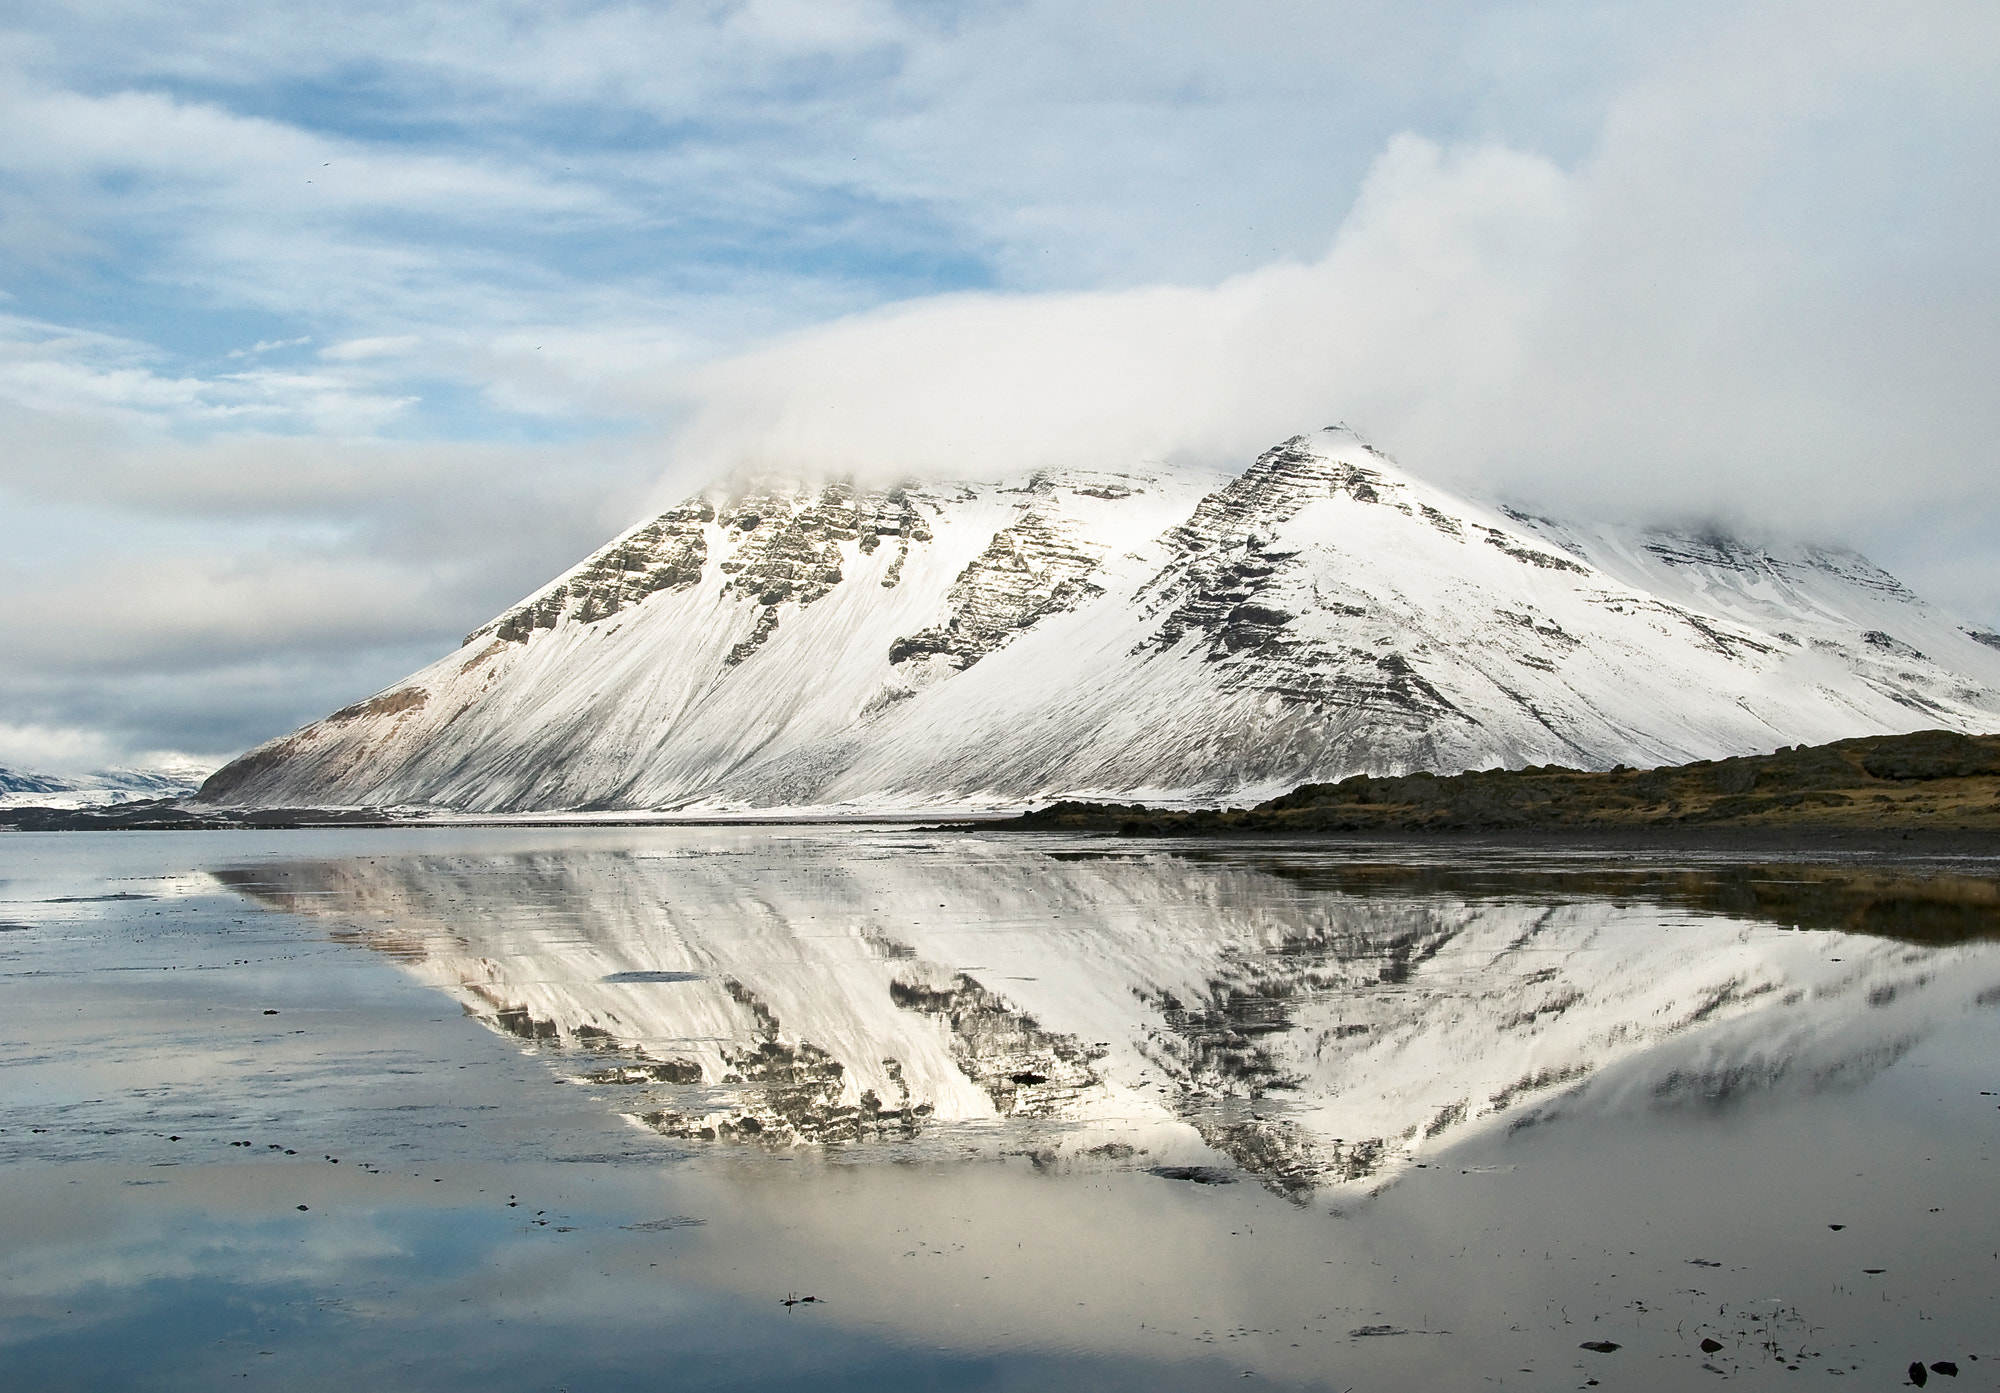 Photograph Cold Reflection by Daniel Bosma on 500px